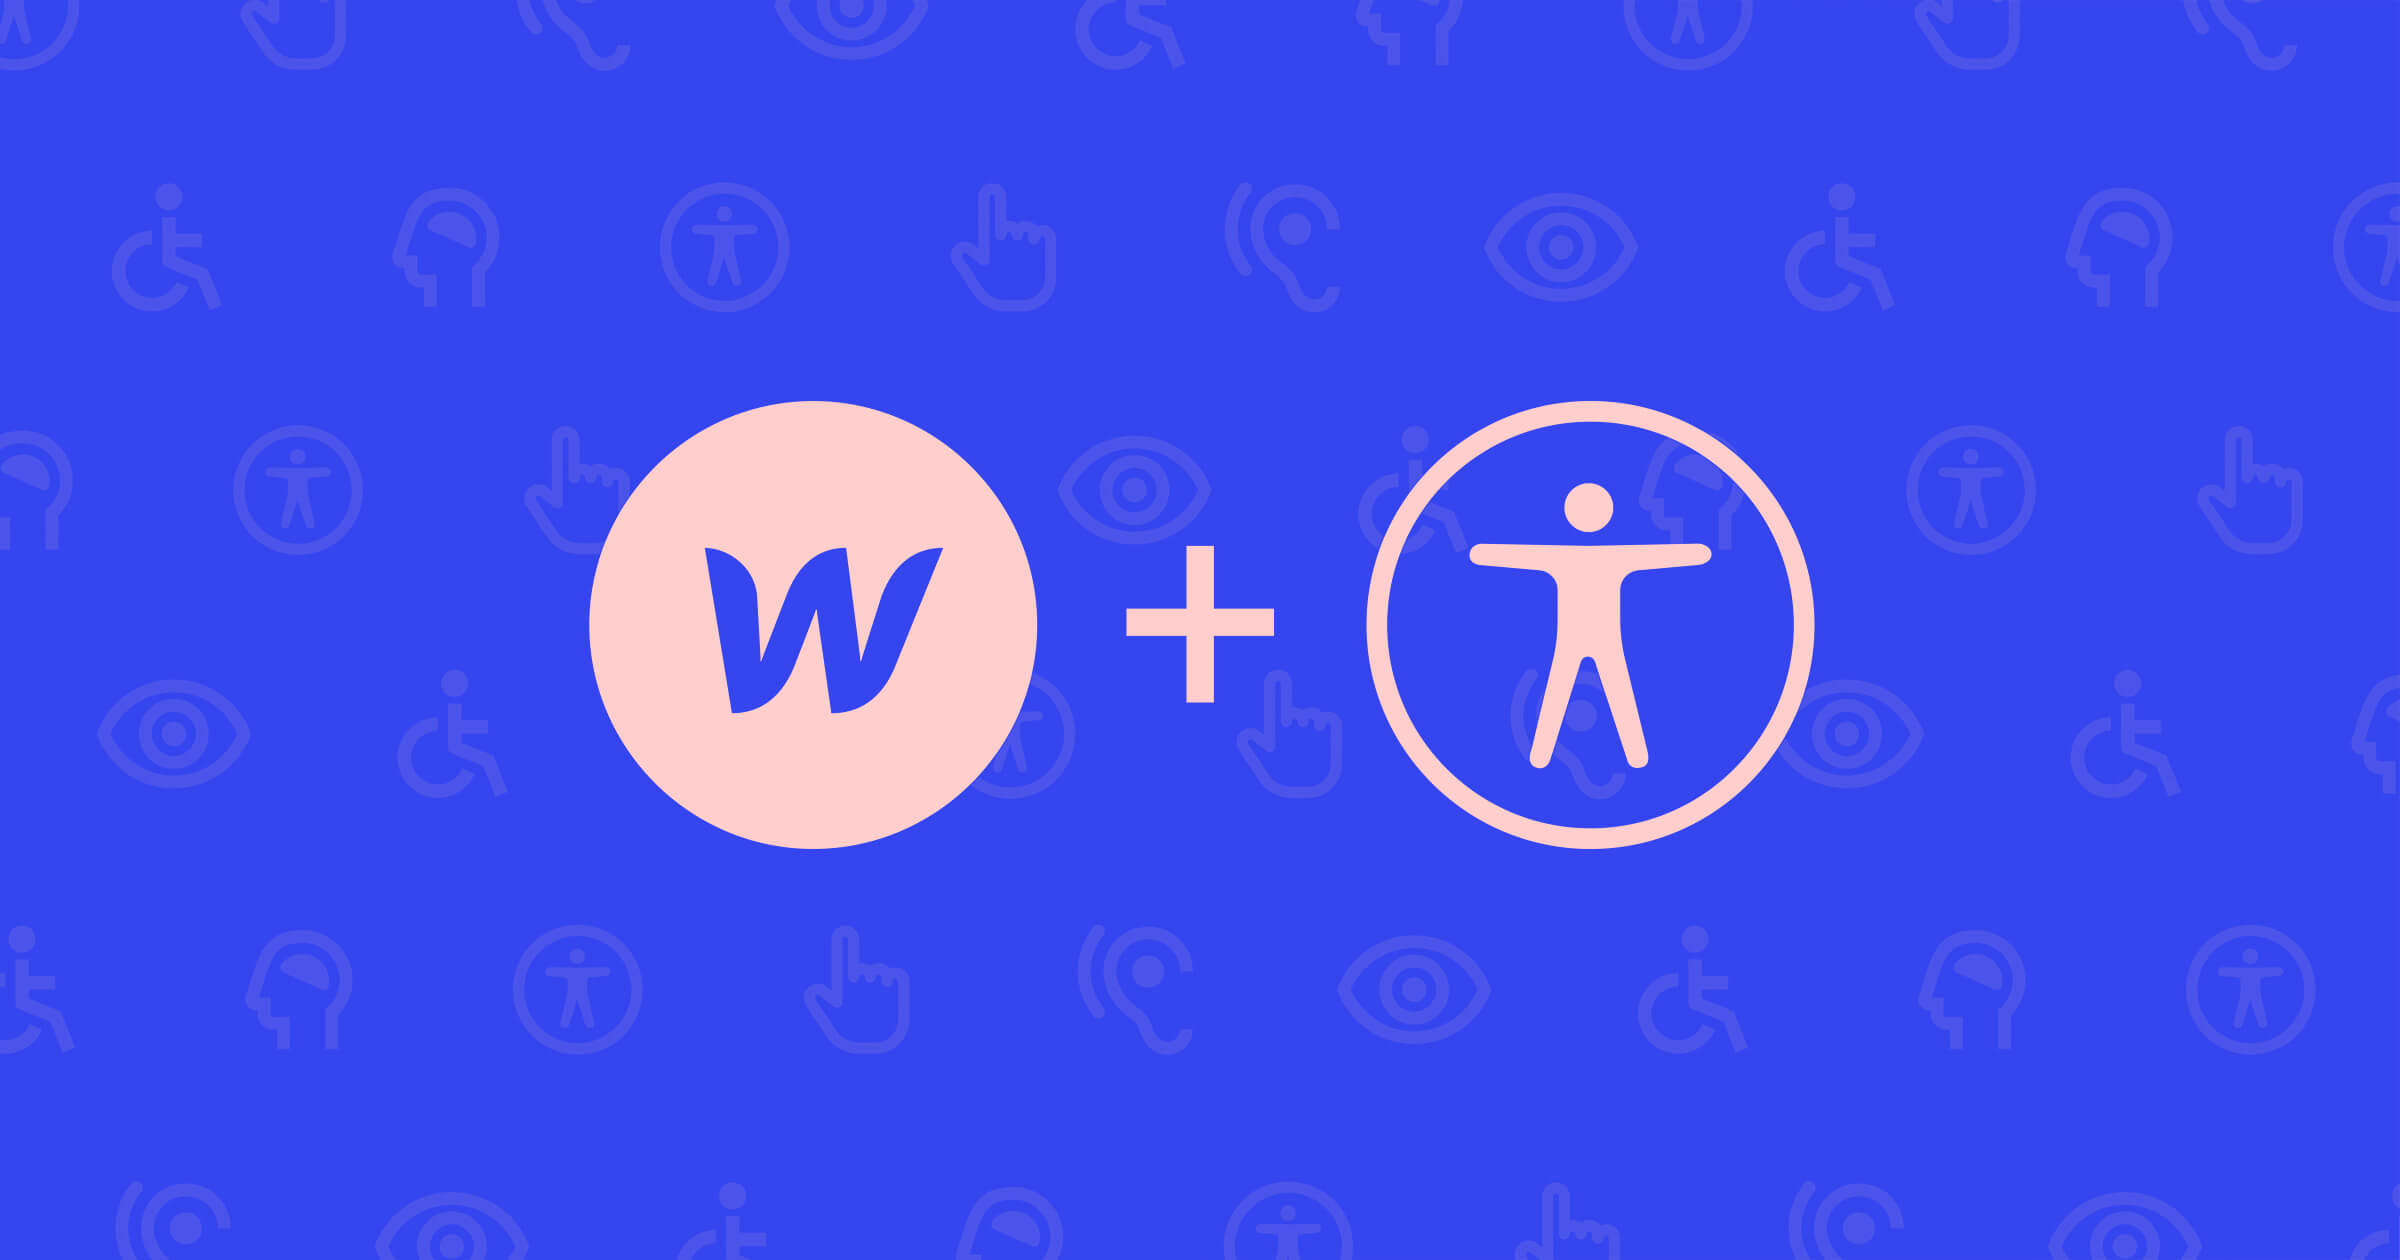 Learning about Webflow and Web Accessibility